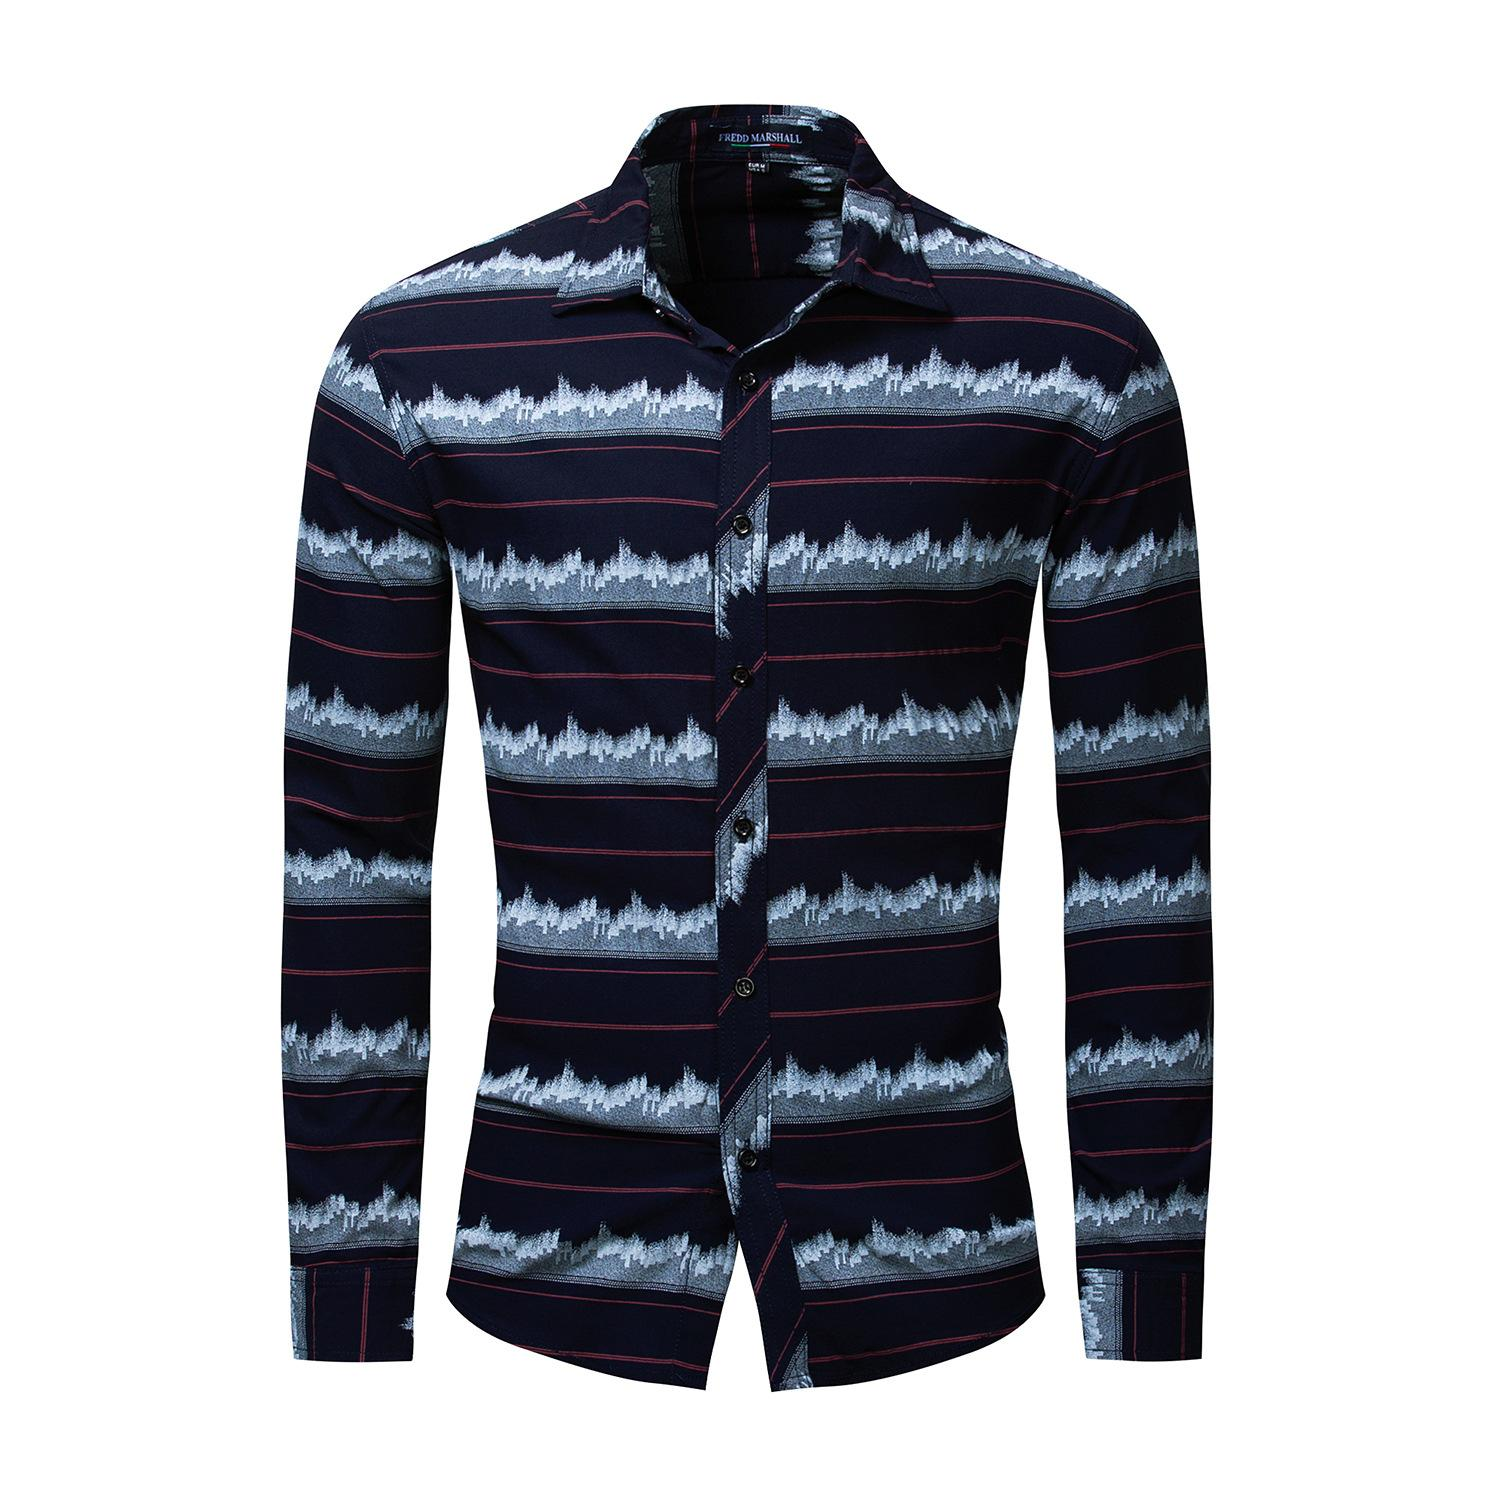 New large size pure cotton long-sleeved striped men's shirt